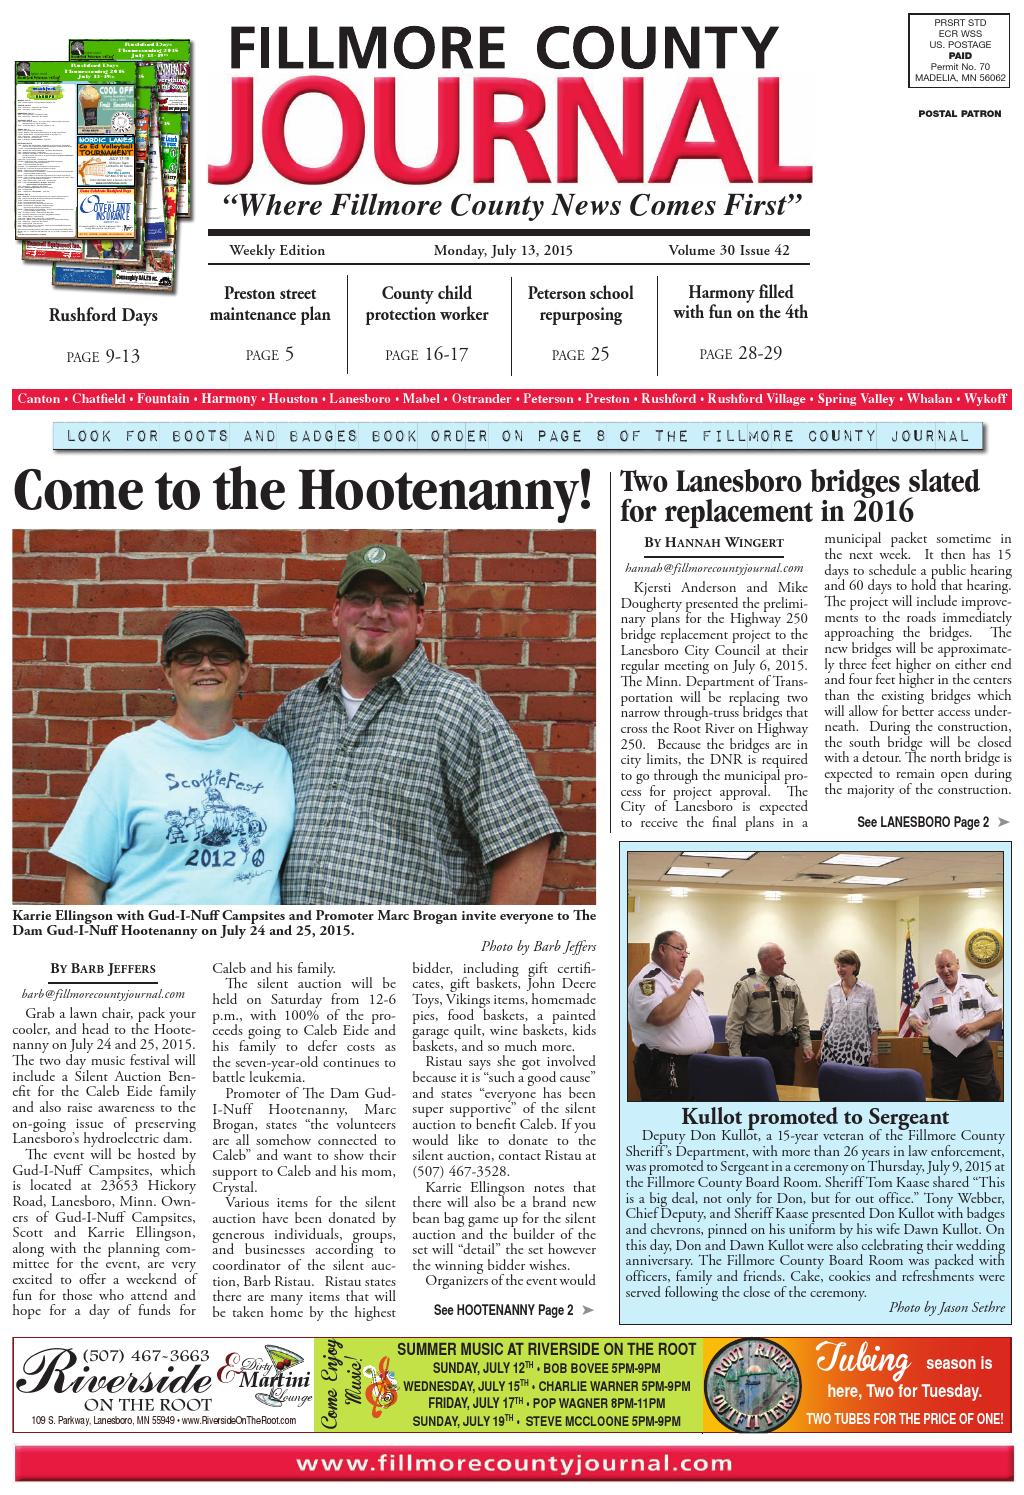 4d0813a25 Fillmore County Journal - 7.13.15 by Jason Sethre - issuu